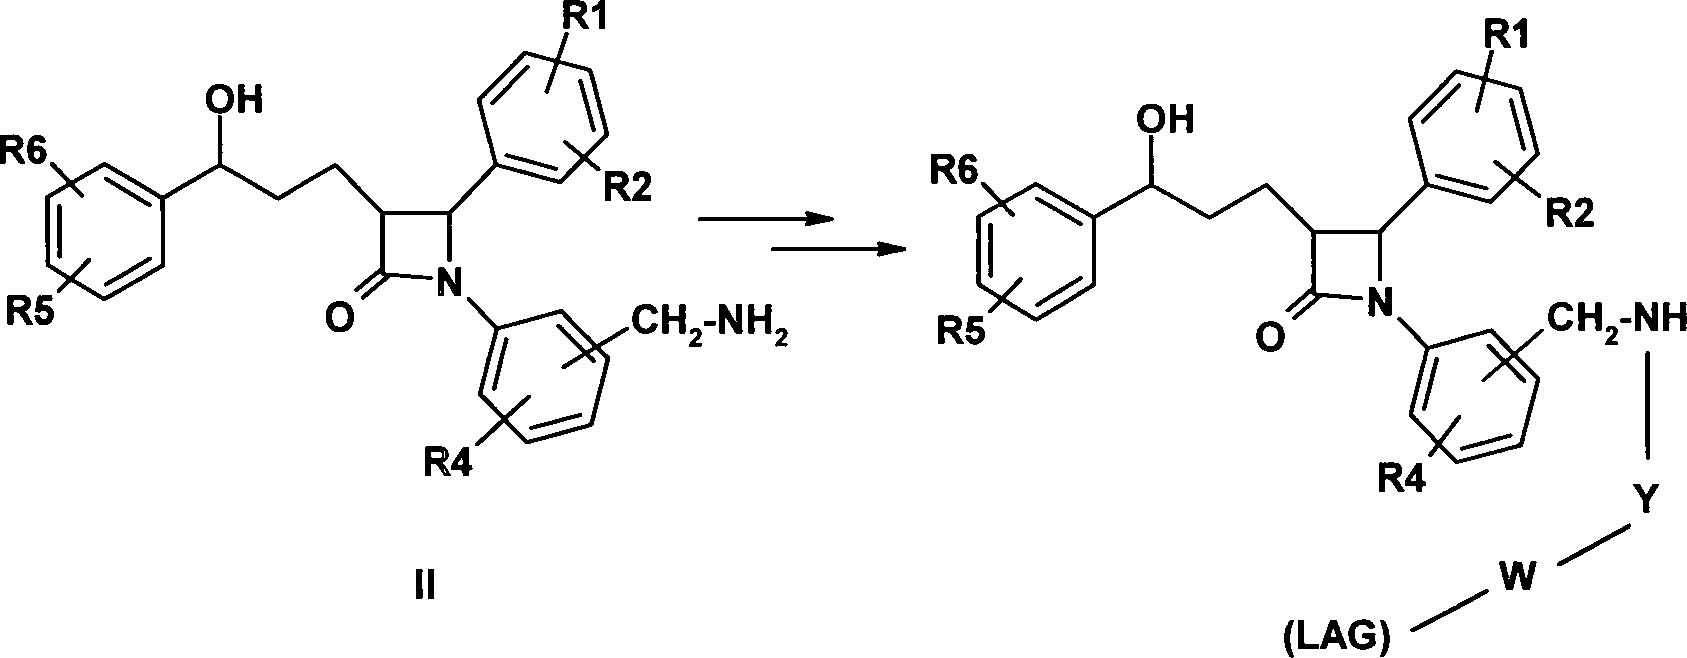 DE102010015123A1 - New benzylamidic diphenylazetidinone compounds ...